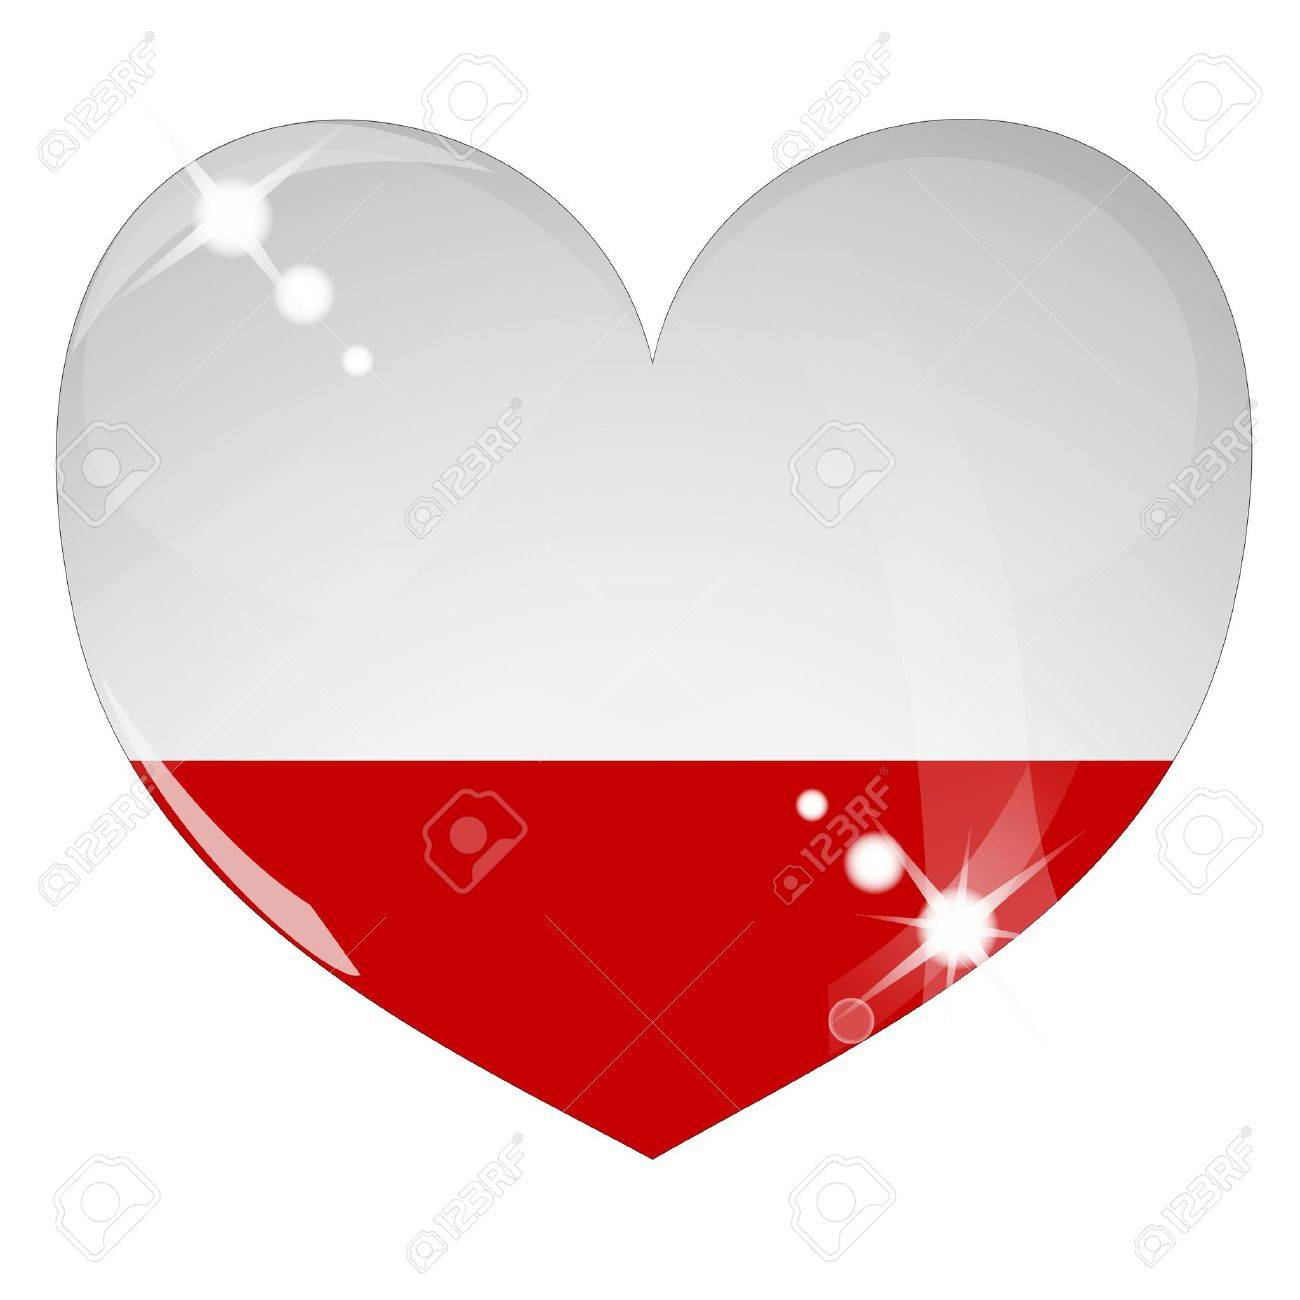 vector heart with poland flag texture royalty free cliparts